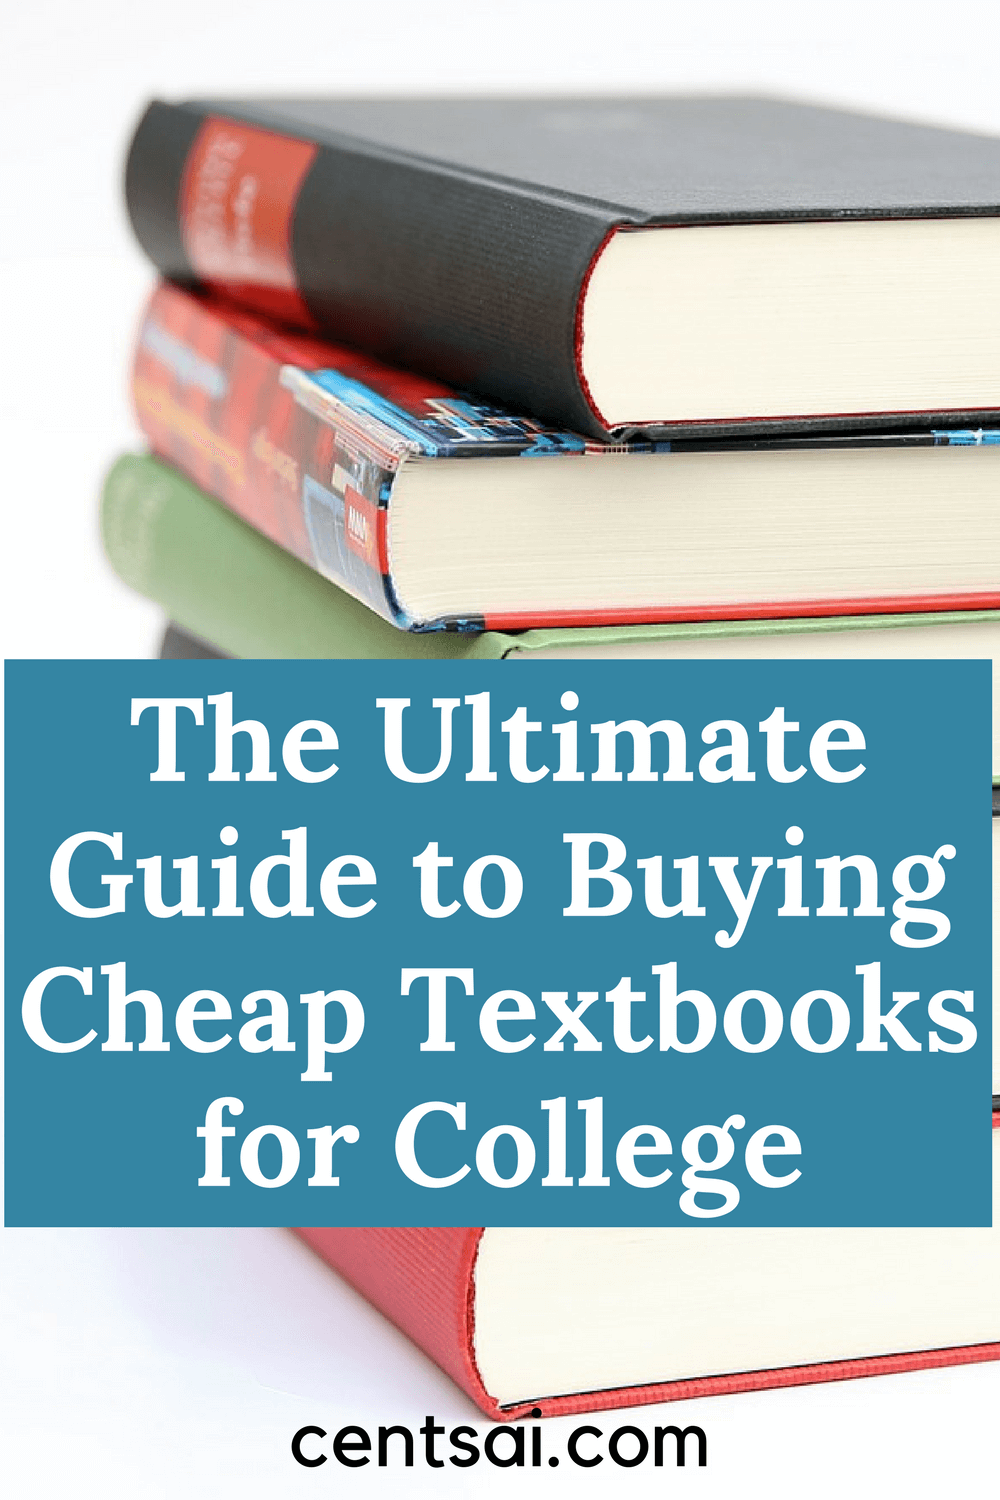 The Ultimate Guide to Buying Cheap Textbooks for College